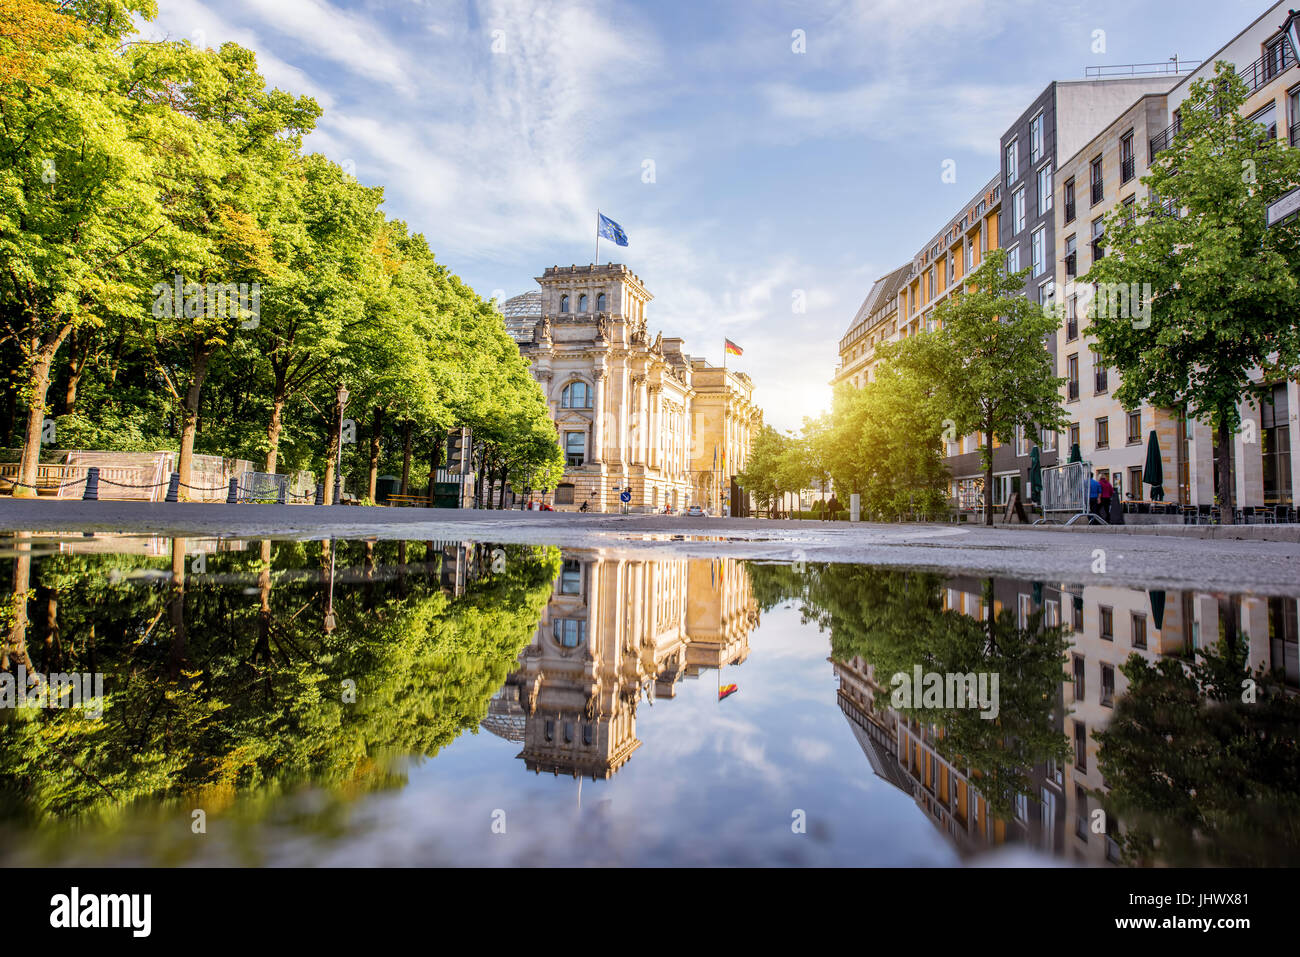 Vue sur la ville de Berlin Photo Stock